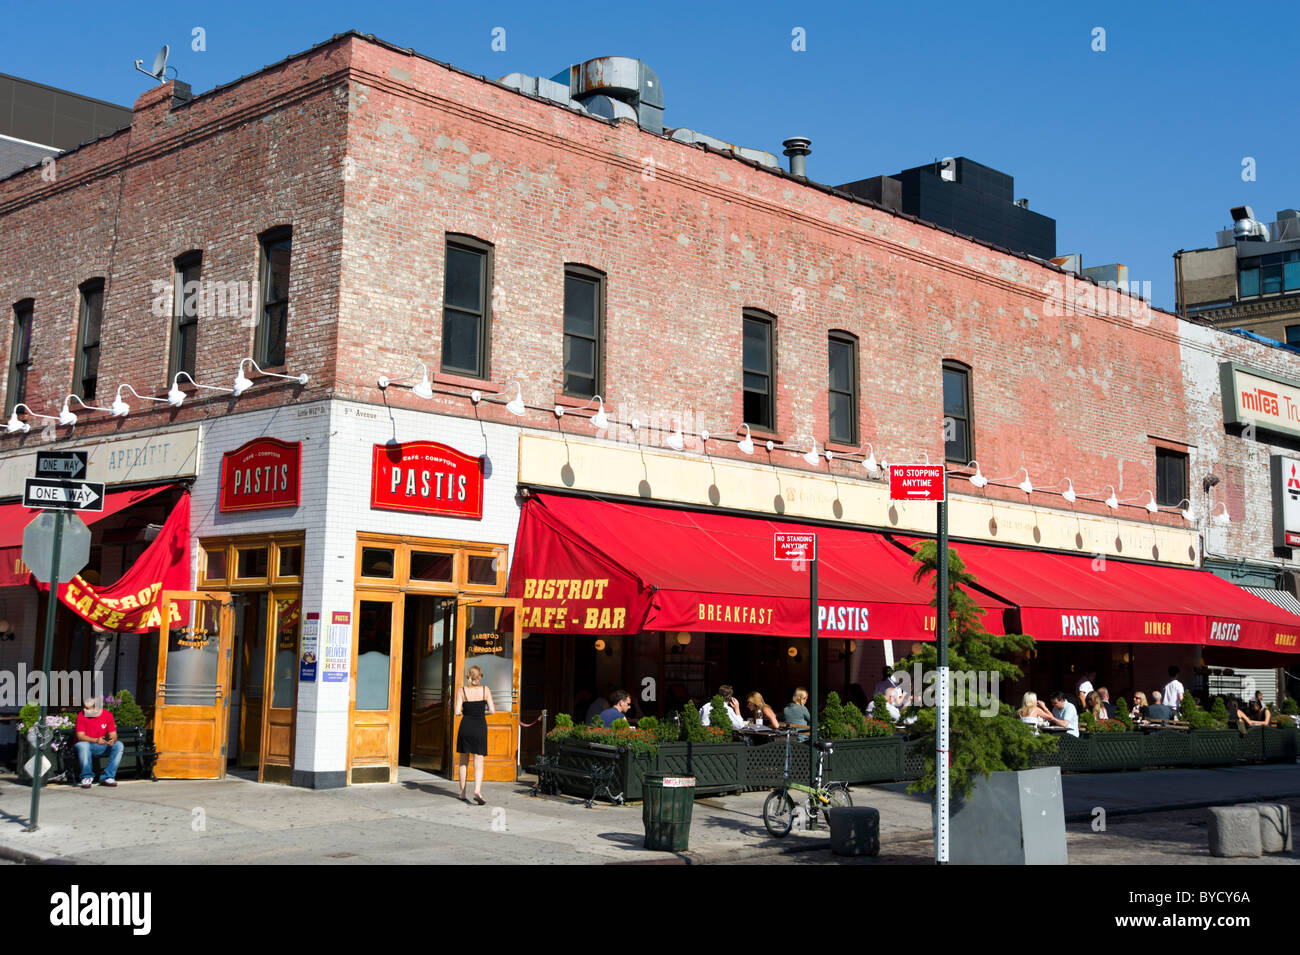 Pastis bistro on 9th Avenue in the Meatpacking District, New York City, America, USA - Stock Image